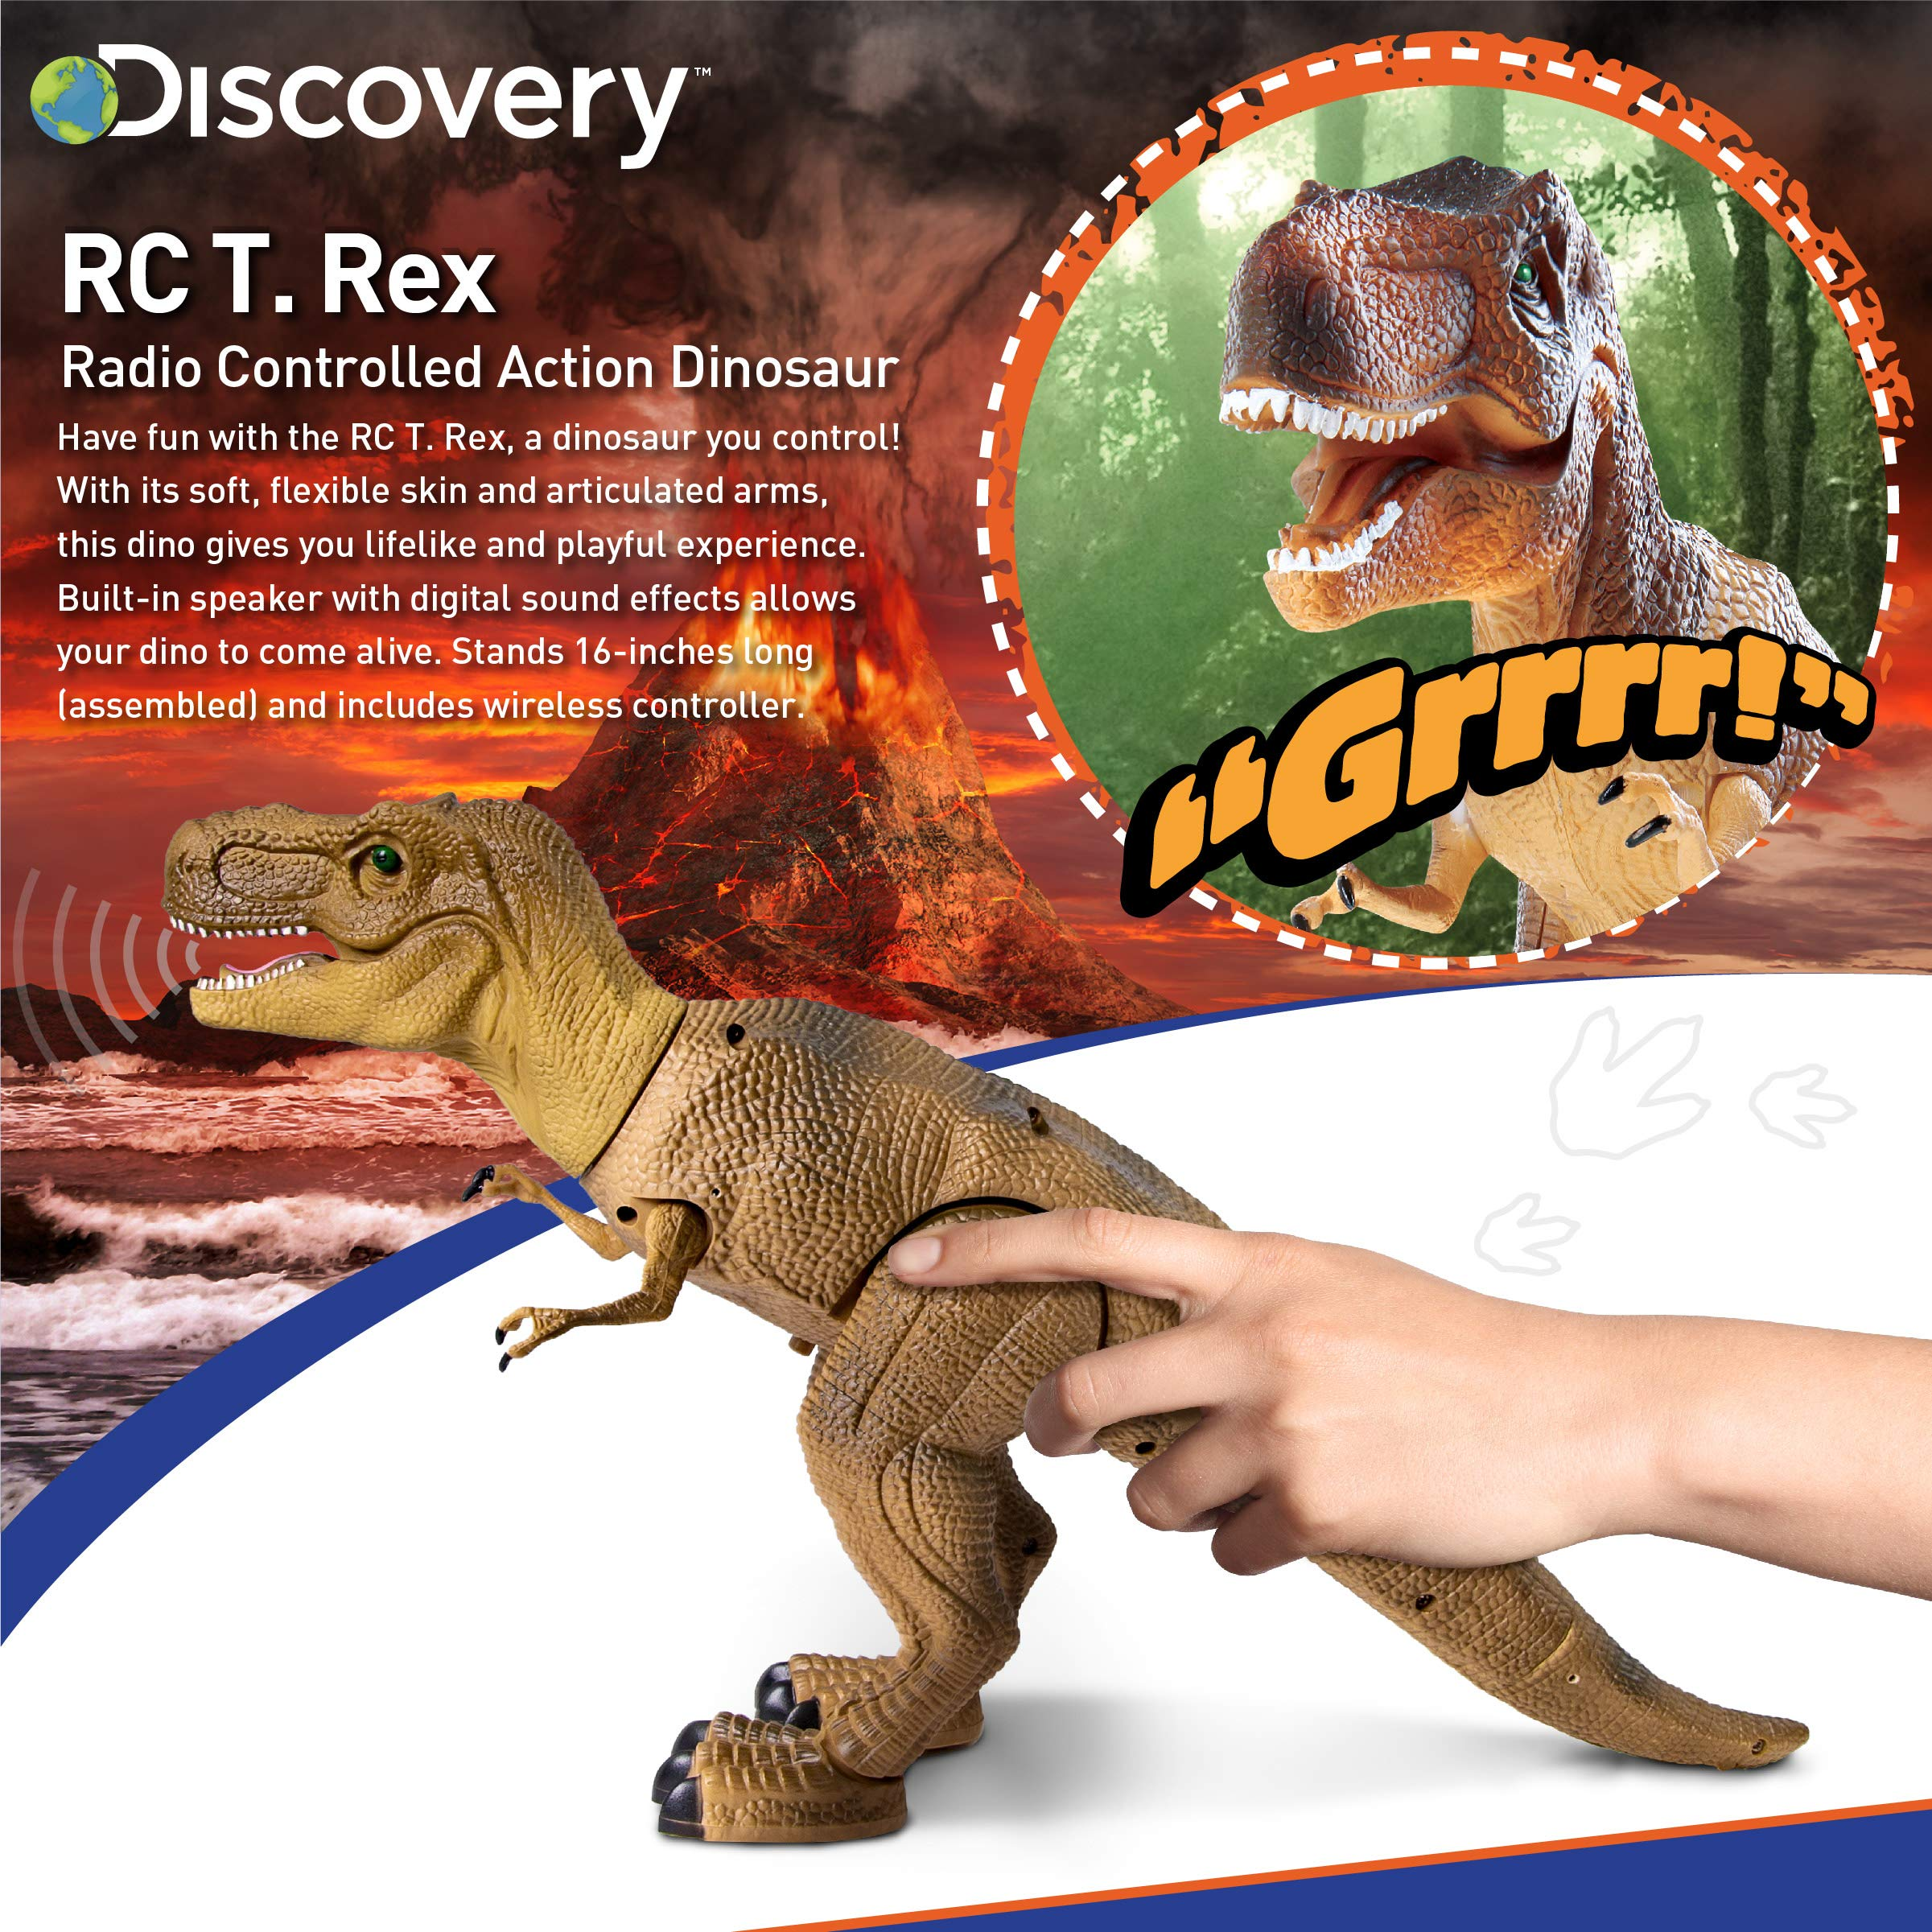 Discovery Kids Remote Control RC T Rex Dinosaur Electronic Toy Action Figure Moving & Walking Robot w/Roaring Sounds & Chomping Mouth, Realistic Plastic Model, Boys & Girls 6 Years Old+ by Discovery Kids (Image #2)